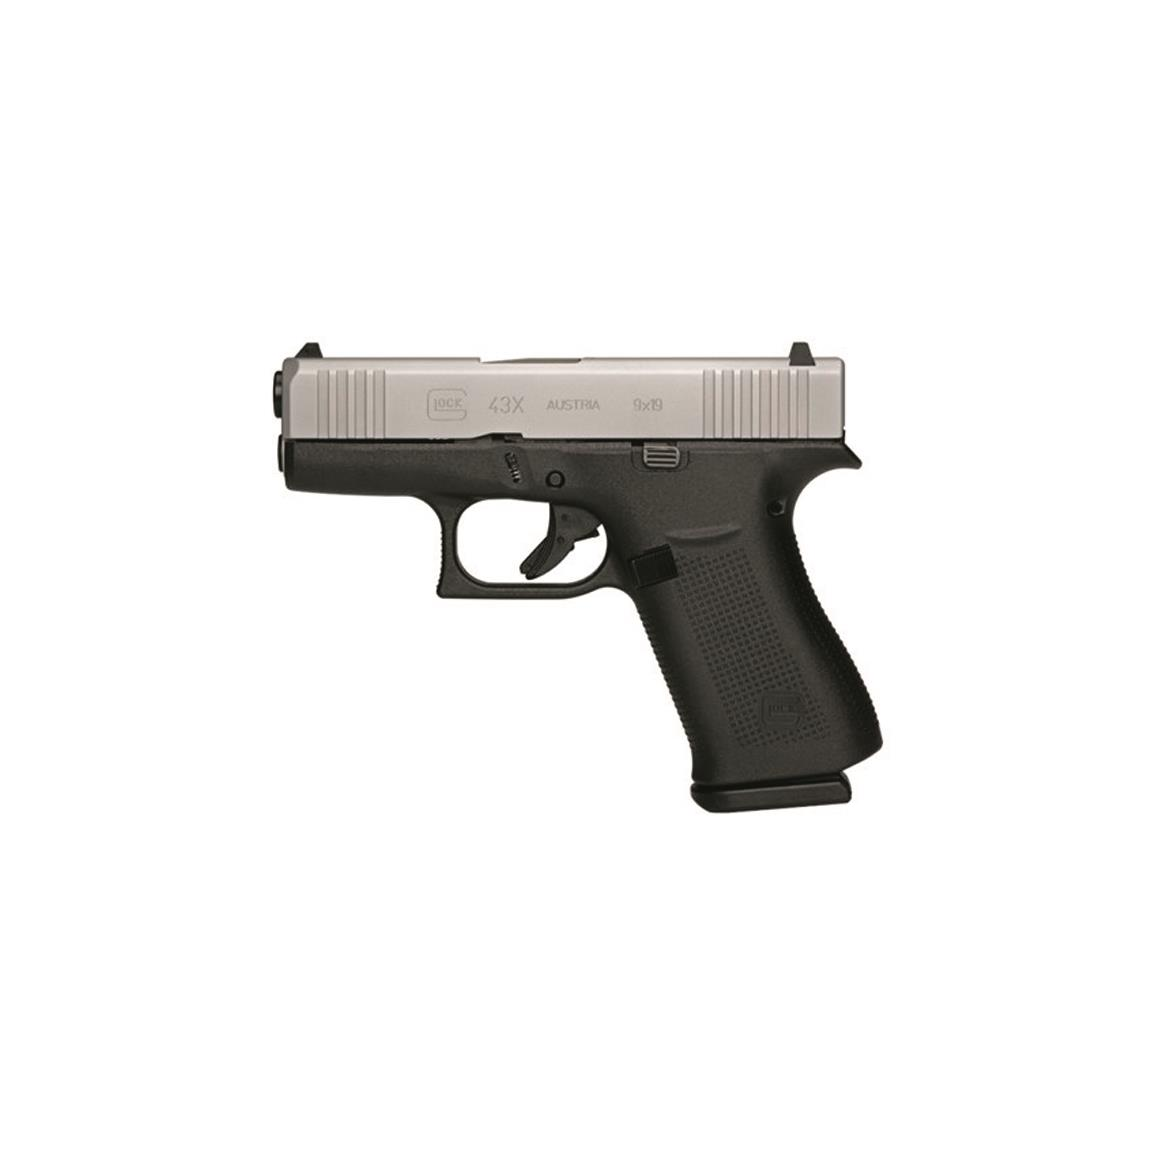 "Glock 43X, Semi-Automatic, 9mm, 3.41"" Barrel, Ameriglo Bold Night Sights, 10+1 Rounds"